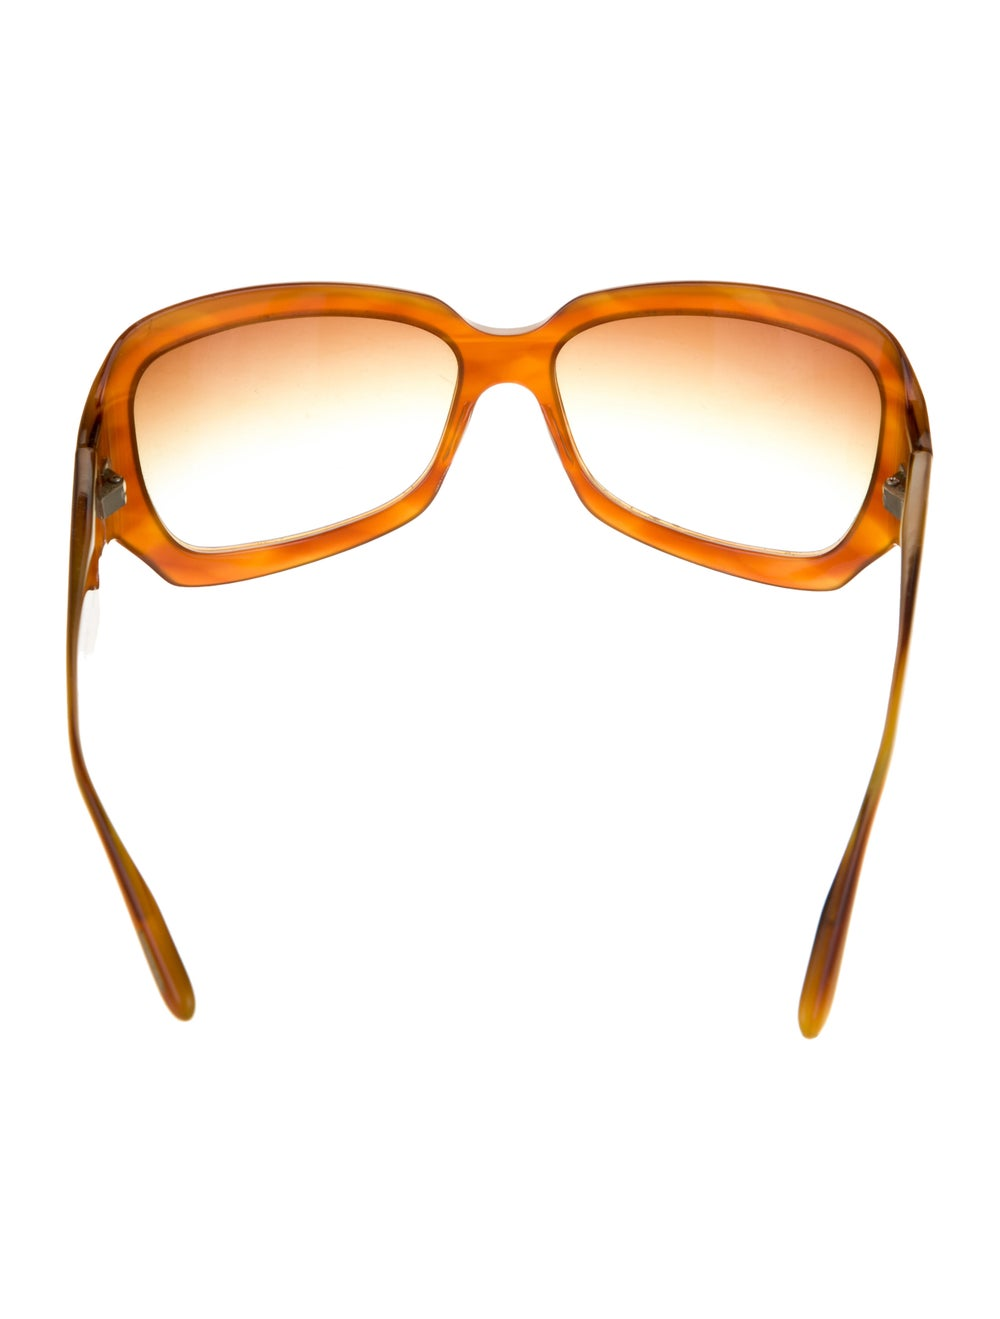 Oliver Peoples Athena Acetate Sunglasses Brown - image 3